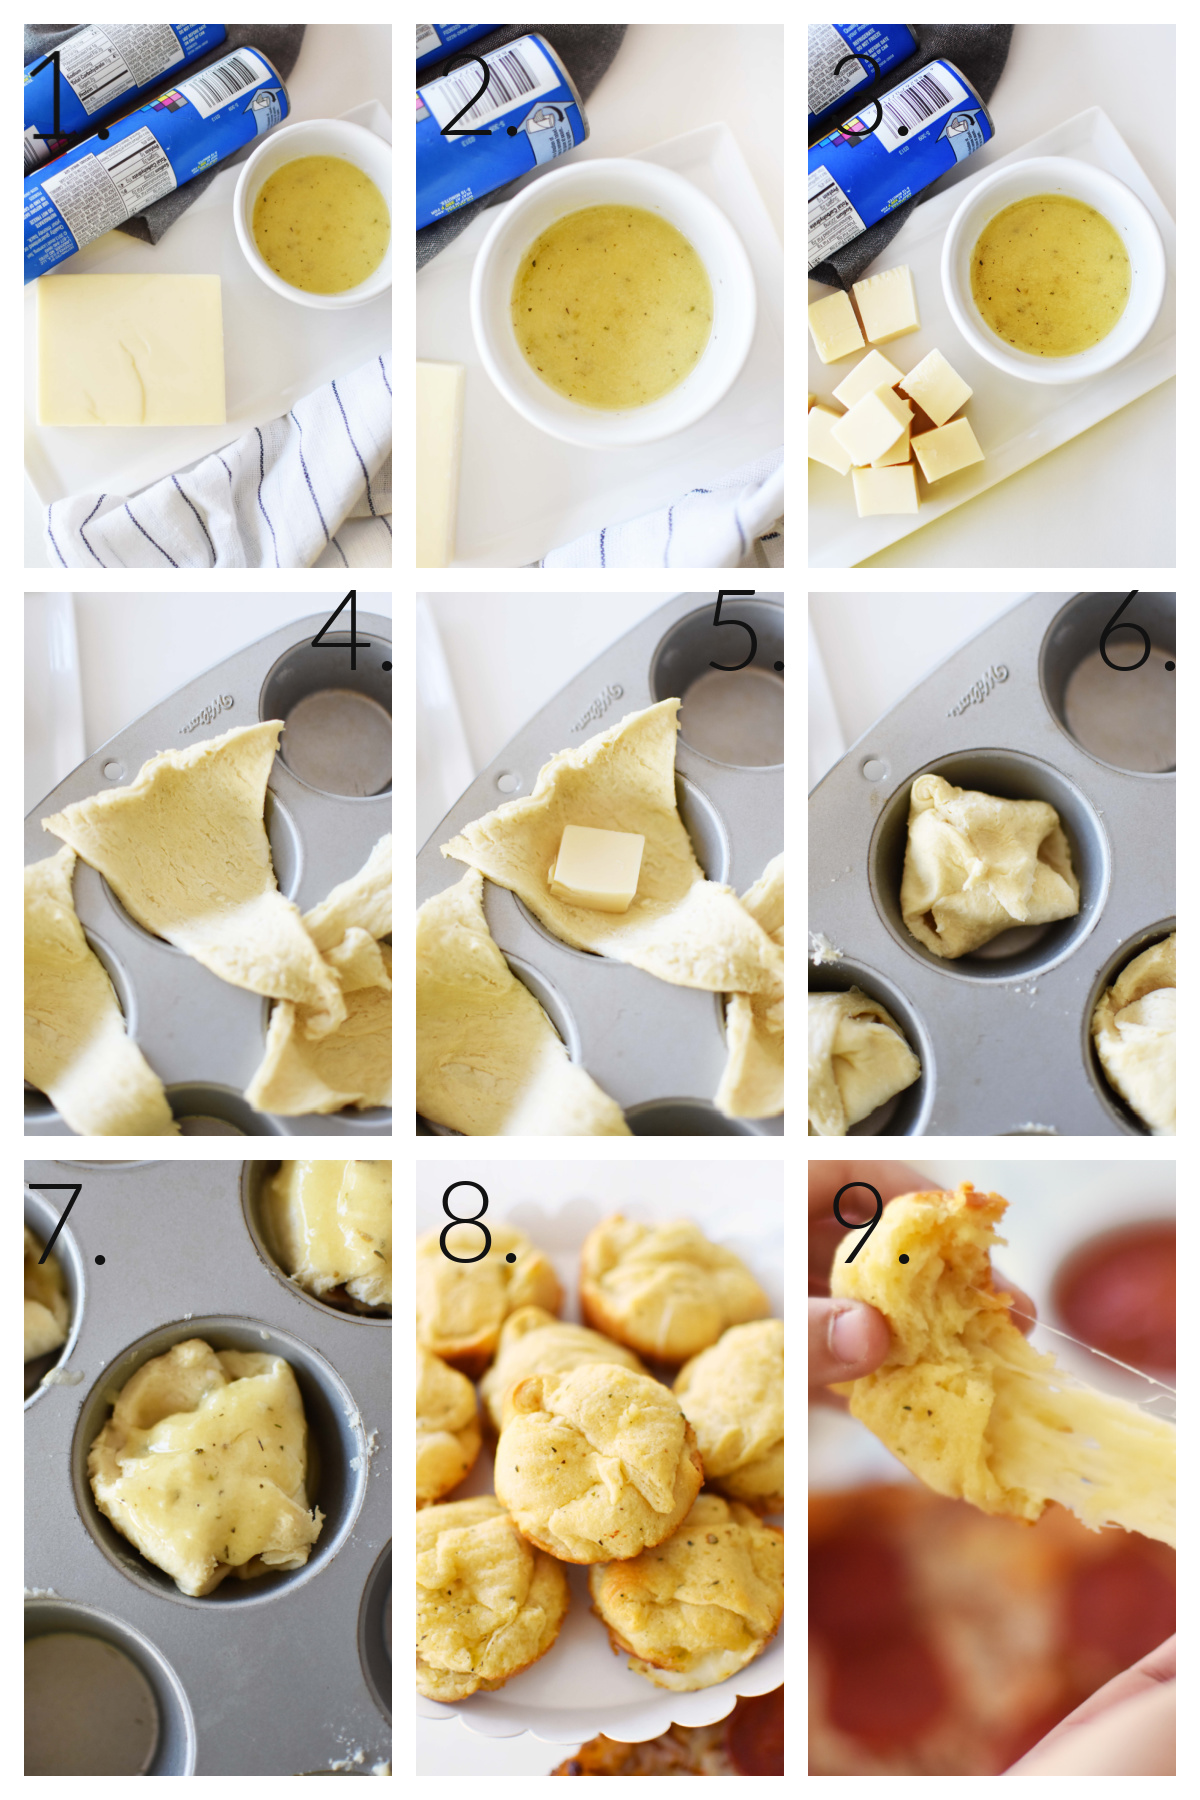 How to make Cheese Garlic Crescent Bites- A 9 block visual collage of the steps to make these bites.